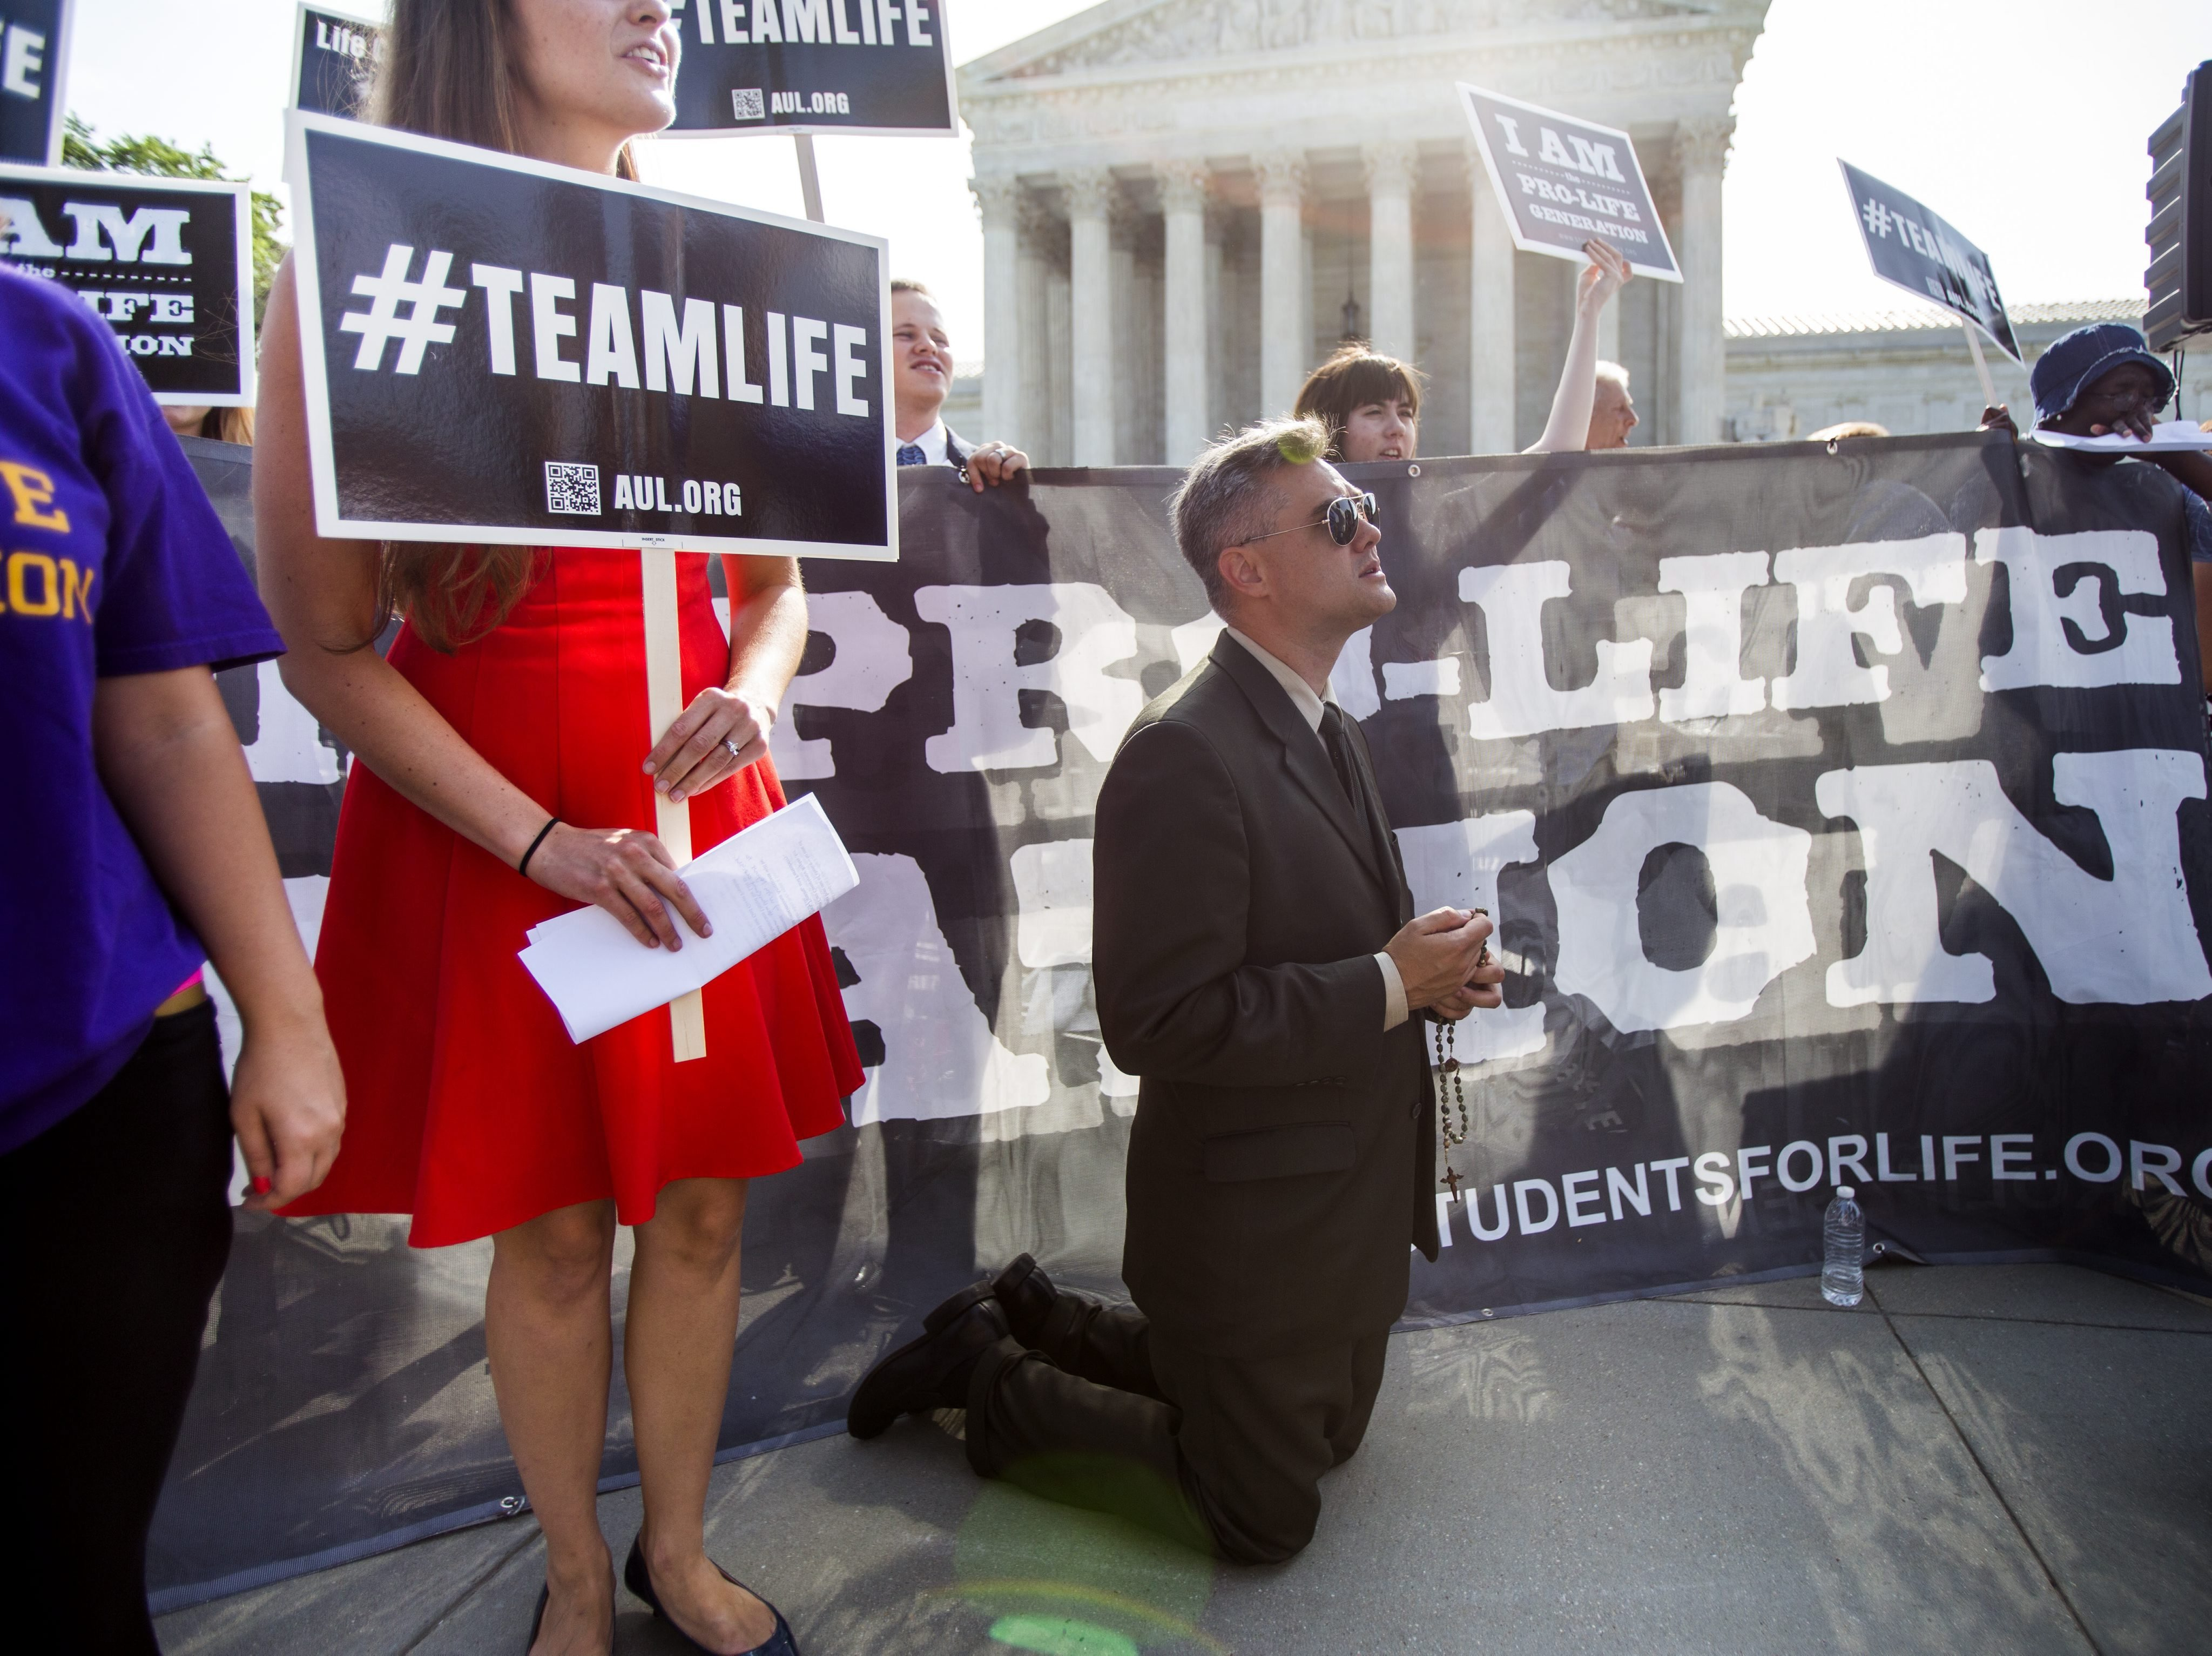 Pro-life supporter Michael Hichborn with American Life League prays outside the US Supreme Court where the nine justices are expected to issue their ruling on the Hobby Lobby case, which challenges the Affordable Care ActÕs mandate that employee health plans include pregnancy preventive services, in Washington on June 30, 2014.